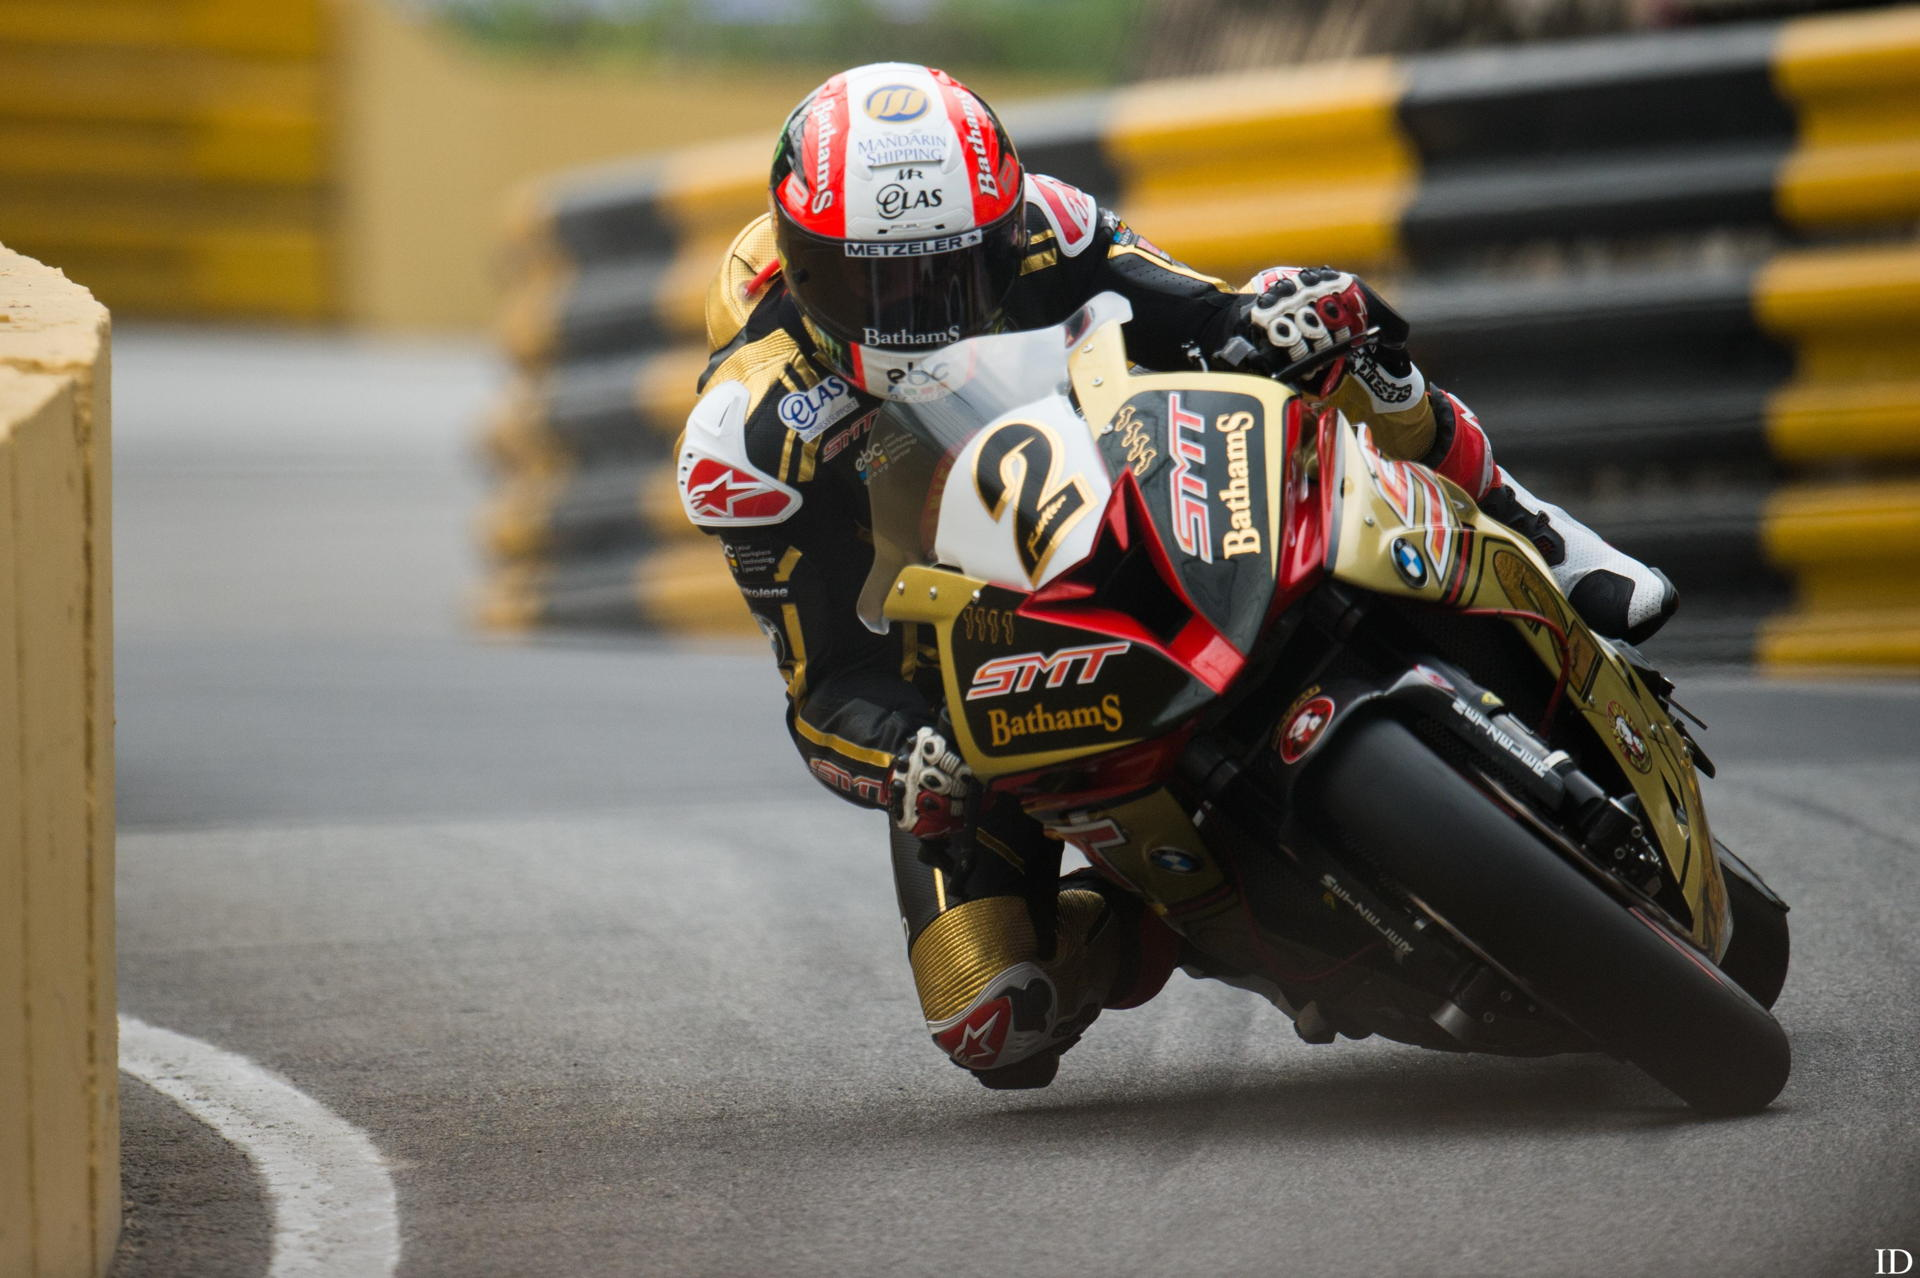 Video: Gran Premio de Macao